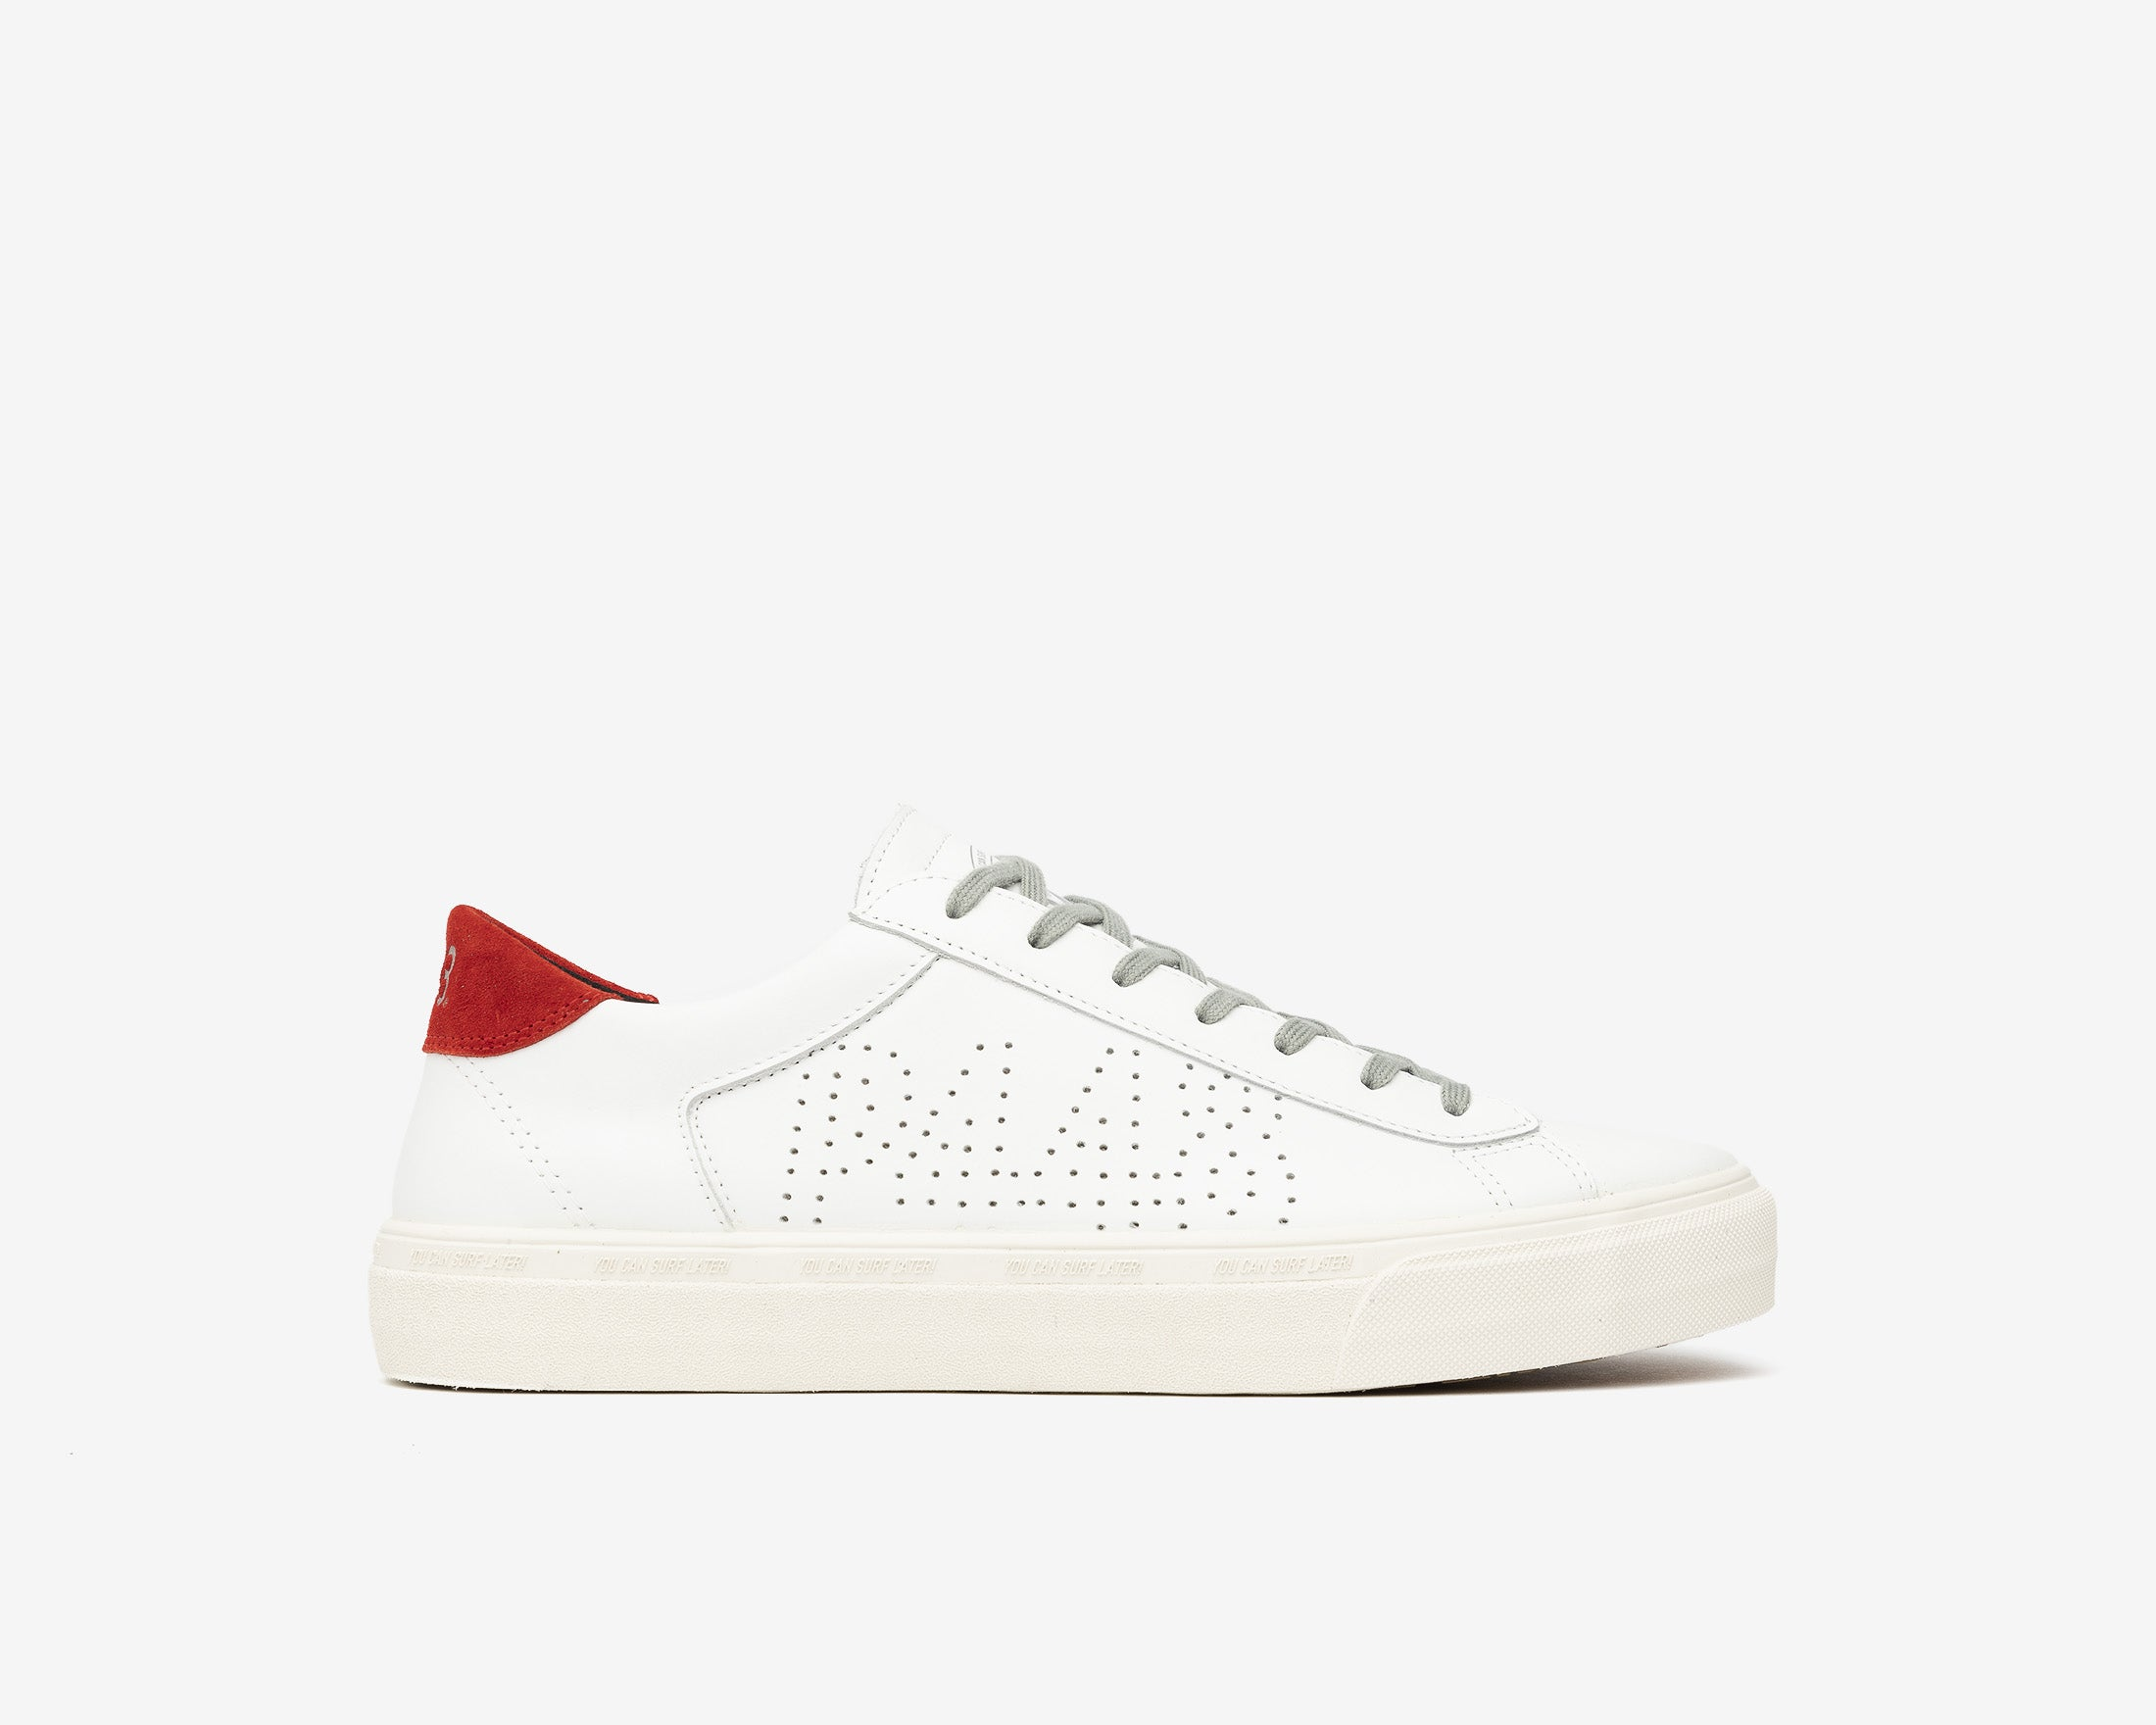 Y.C.S.L. Low-Top Volcanized Sneaker in White/Red - Profile